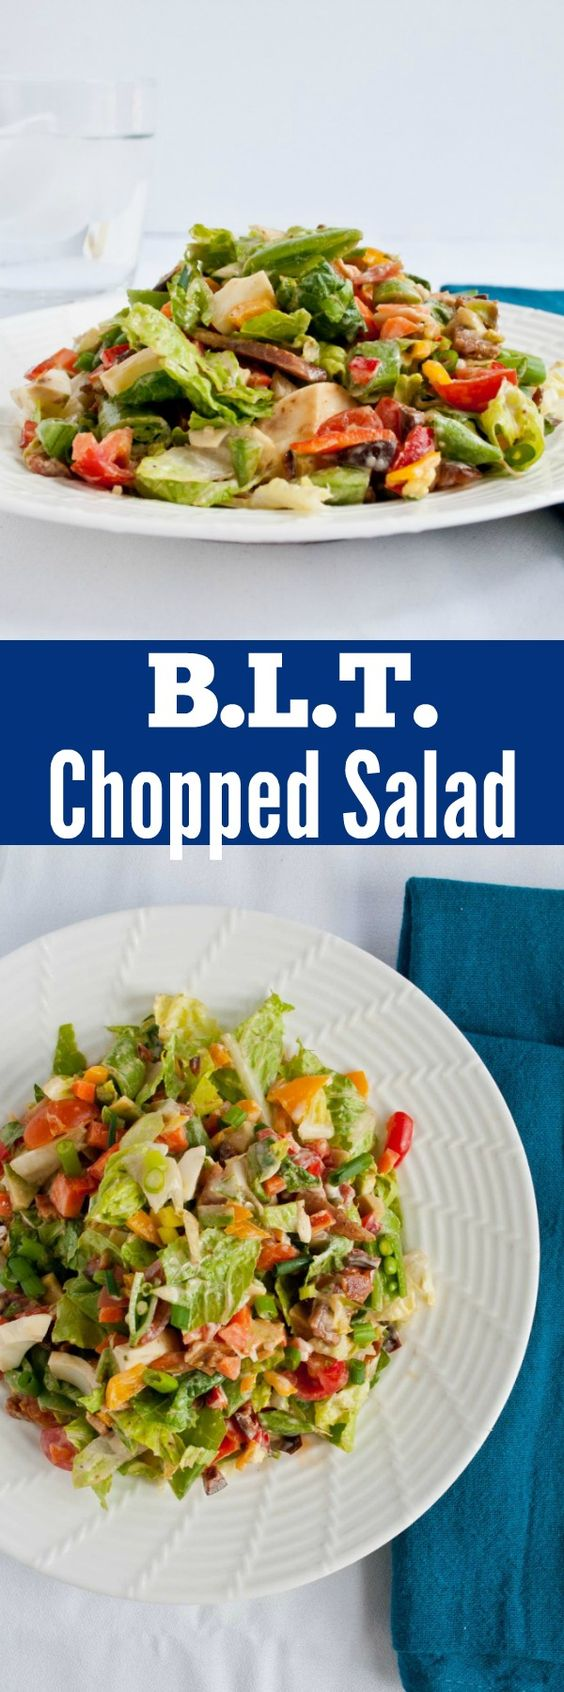 Blt chopped salads, Chopped salads and Snap peas on Pinterest